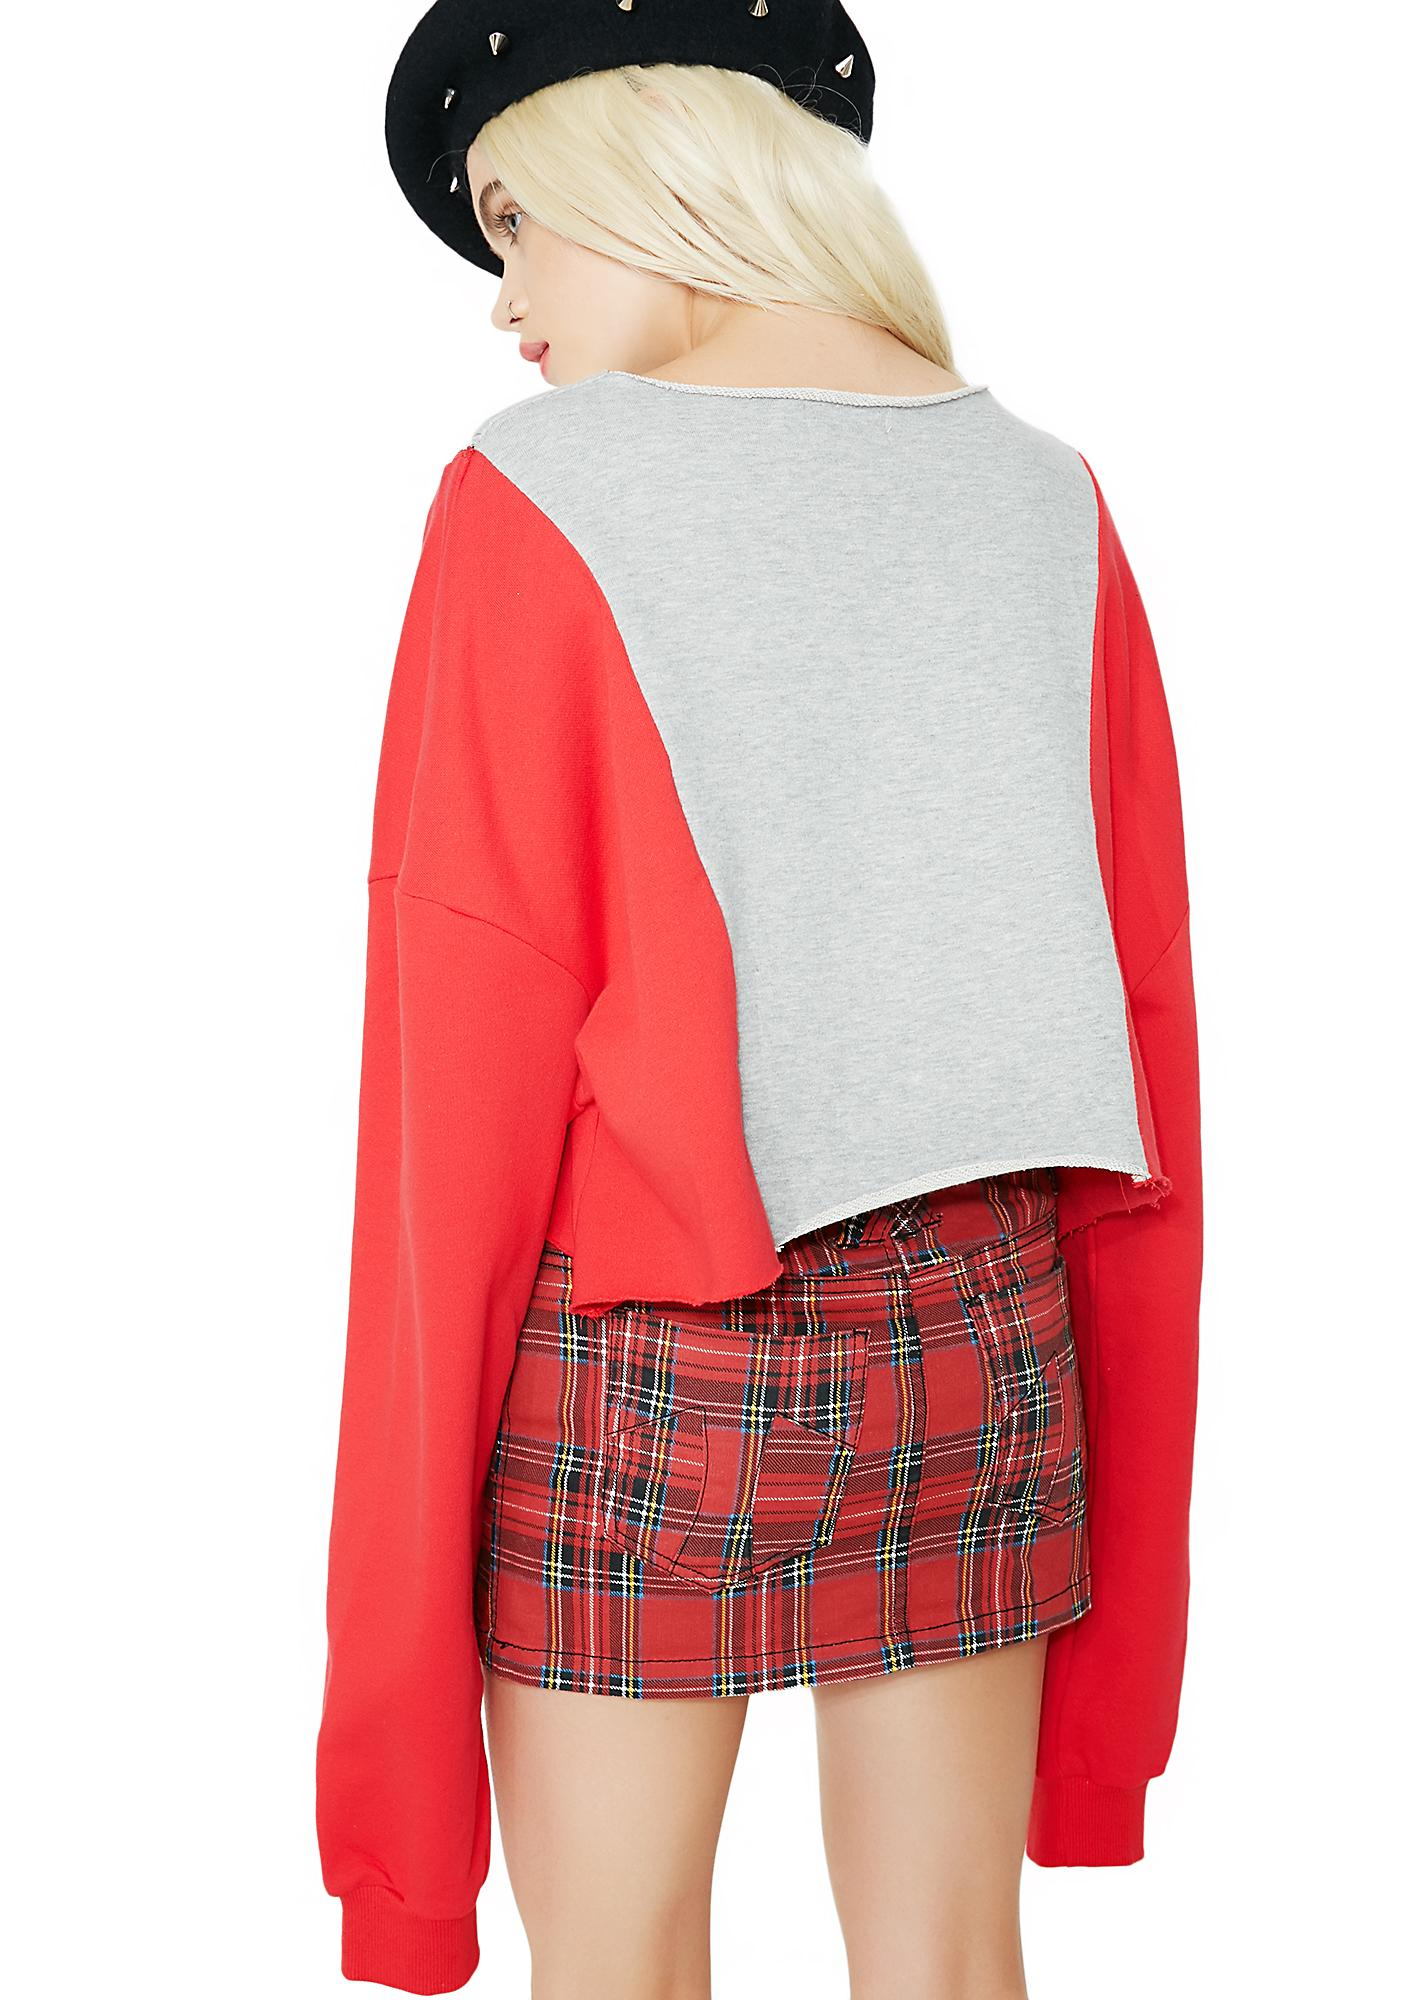 In The Mix Paneled Sweatshirt